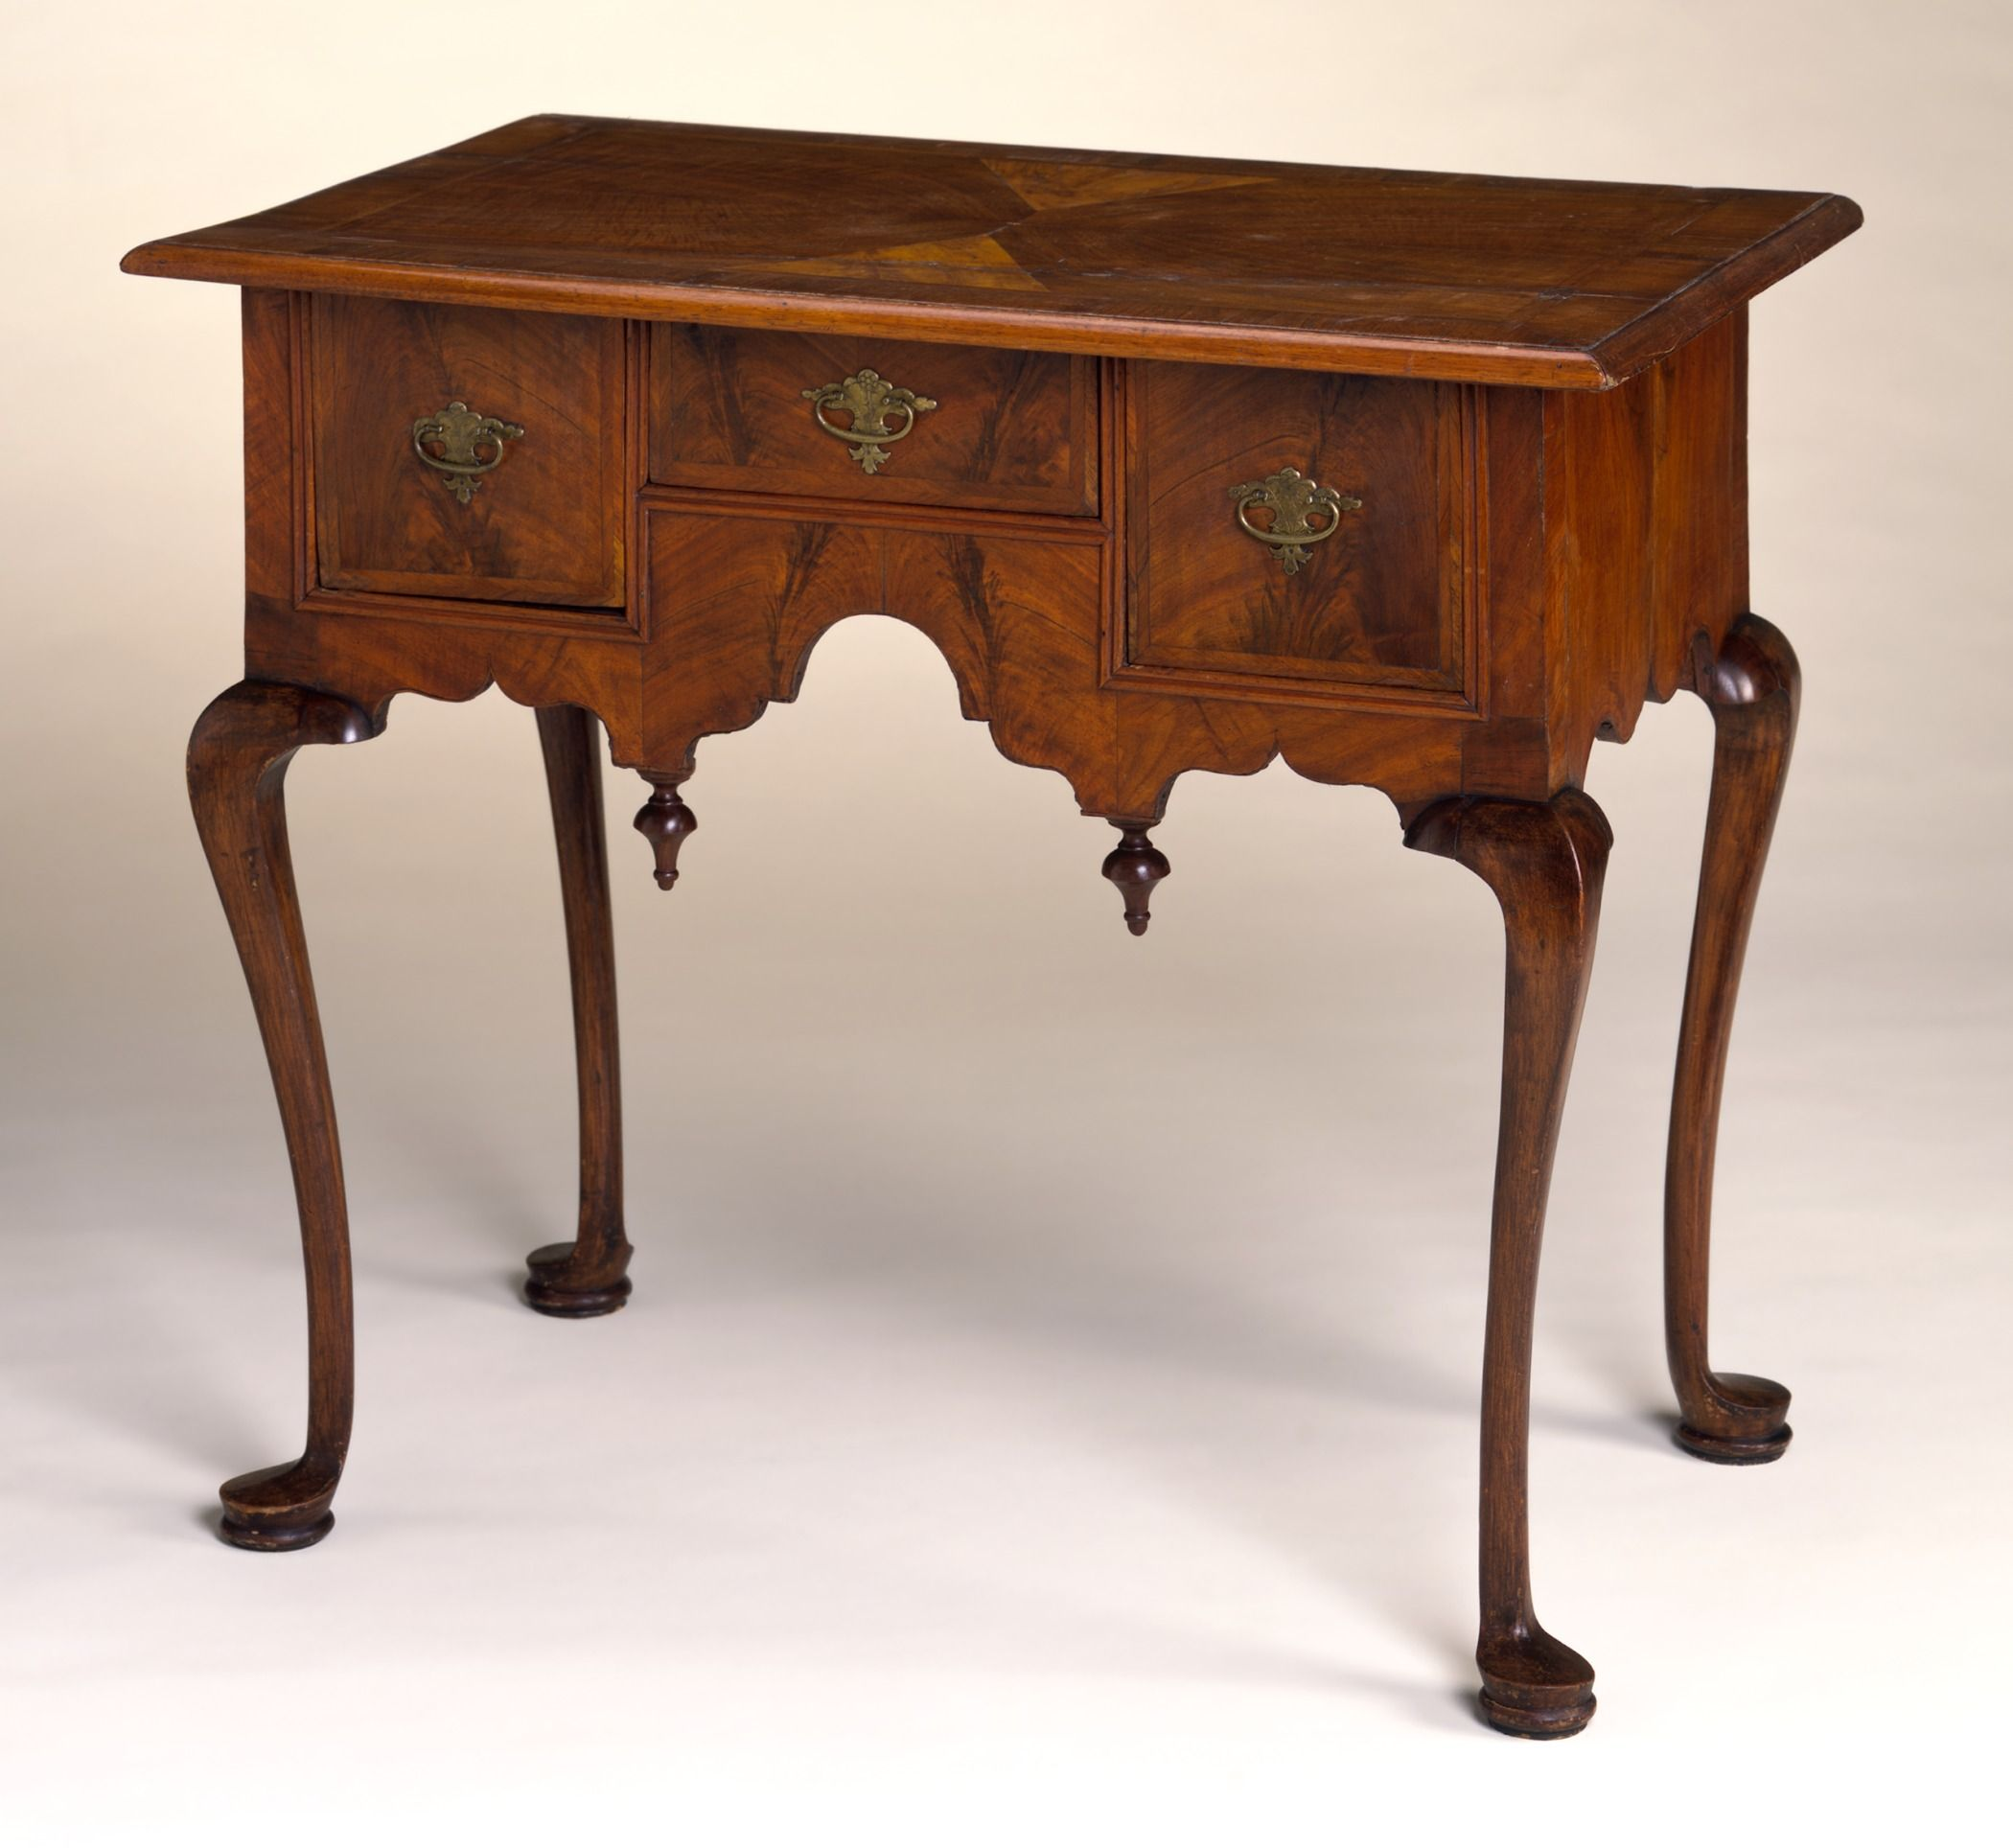 Queen Anne Style Furniture   Wikipedia, The Free Encyclopedia